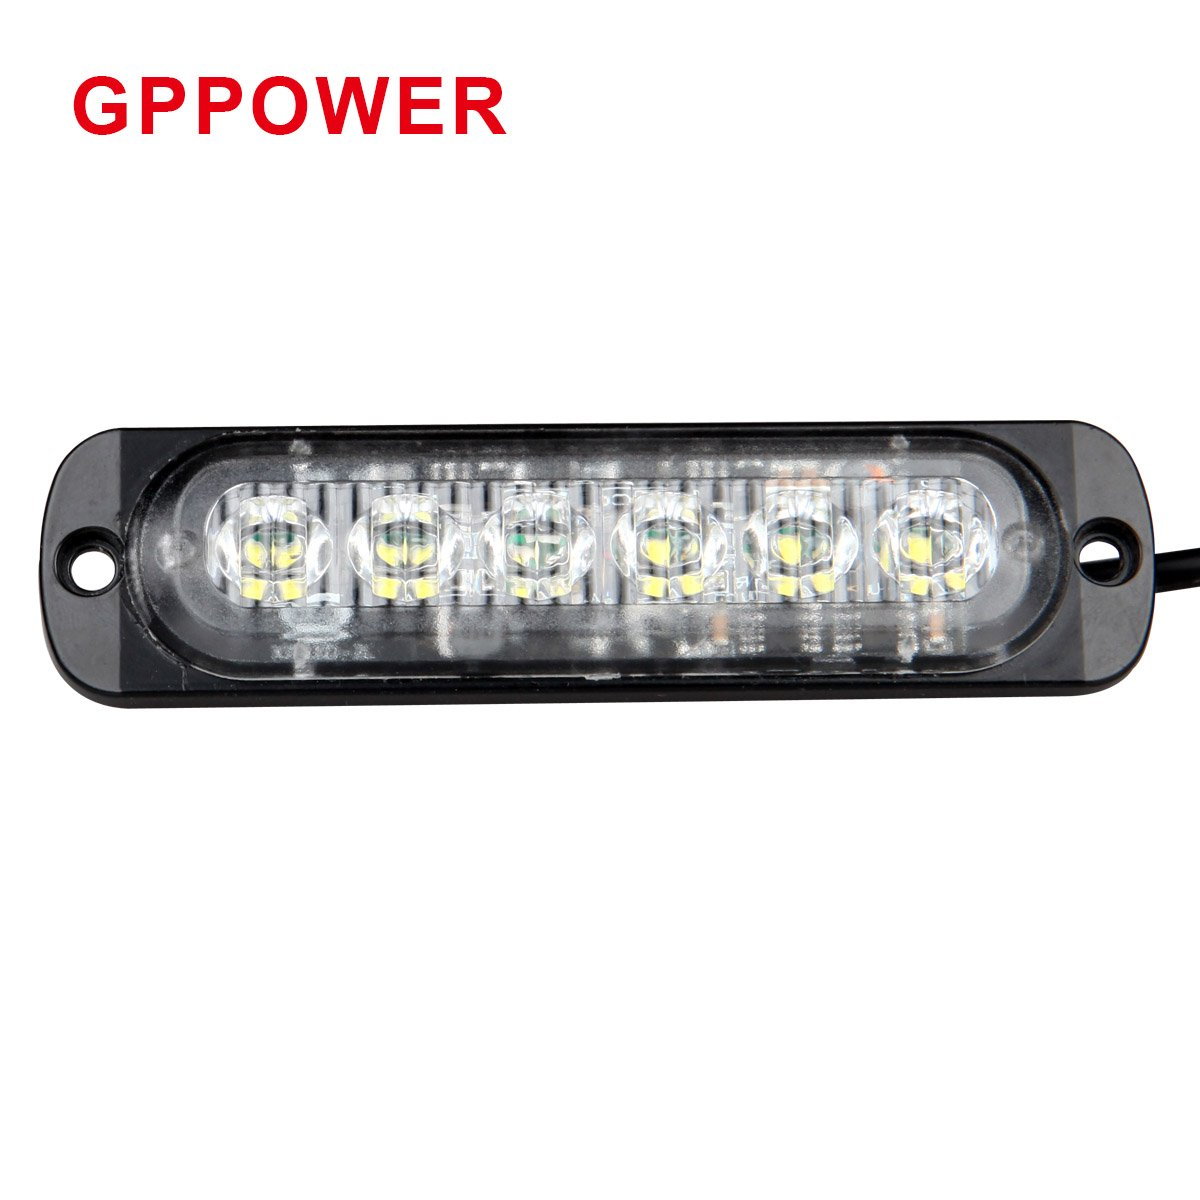 Gppower Universal Super Thin 6 Led Blue 19 Flashing Mode Traffic Signal Head Wiring Diagram Car Truck Warning Caution Emergency Construction Strobe Light Bar 06t